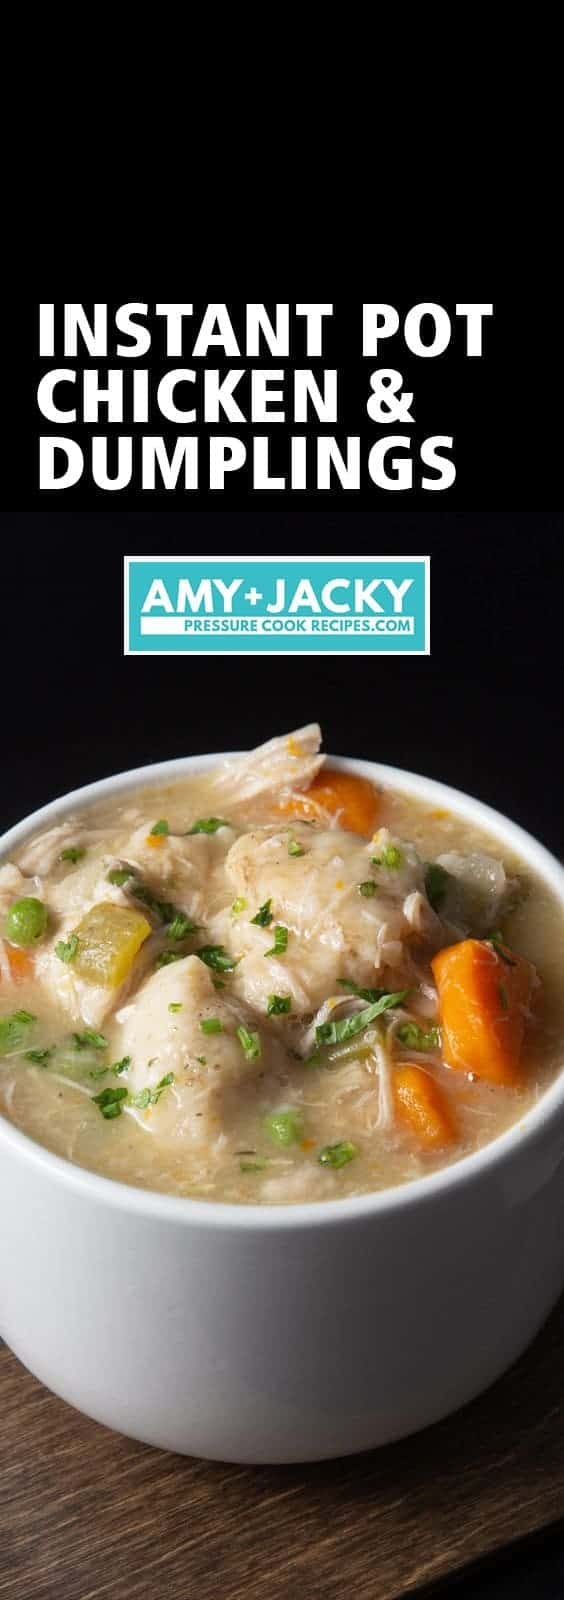 Instant Pot Chicken and Dumplings Recipe (Pressure Cooker Chicken and Dumplings): how to make satisfying Chicken and Dumplings - classic comfort food with tender chicken and fluffy homemade dumplings in aromatic chicken broth. An all-time family favorite! #instantpot #instapot #instantpotrecipes #pressurecooker #recipes #chickenrecipes #southern #soul